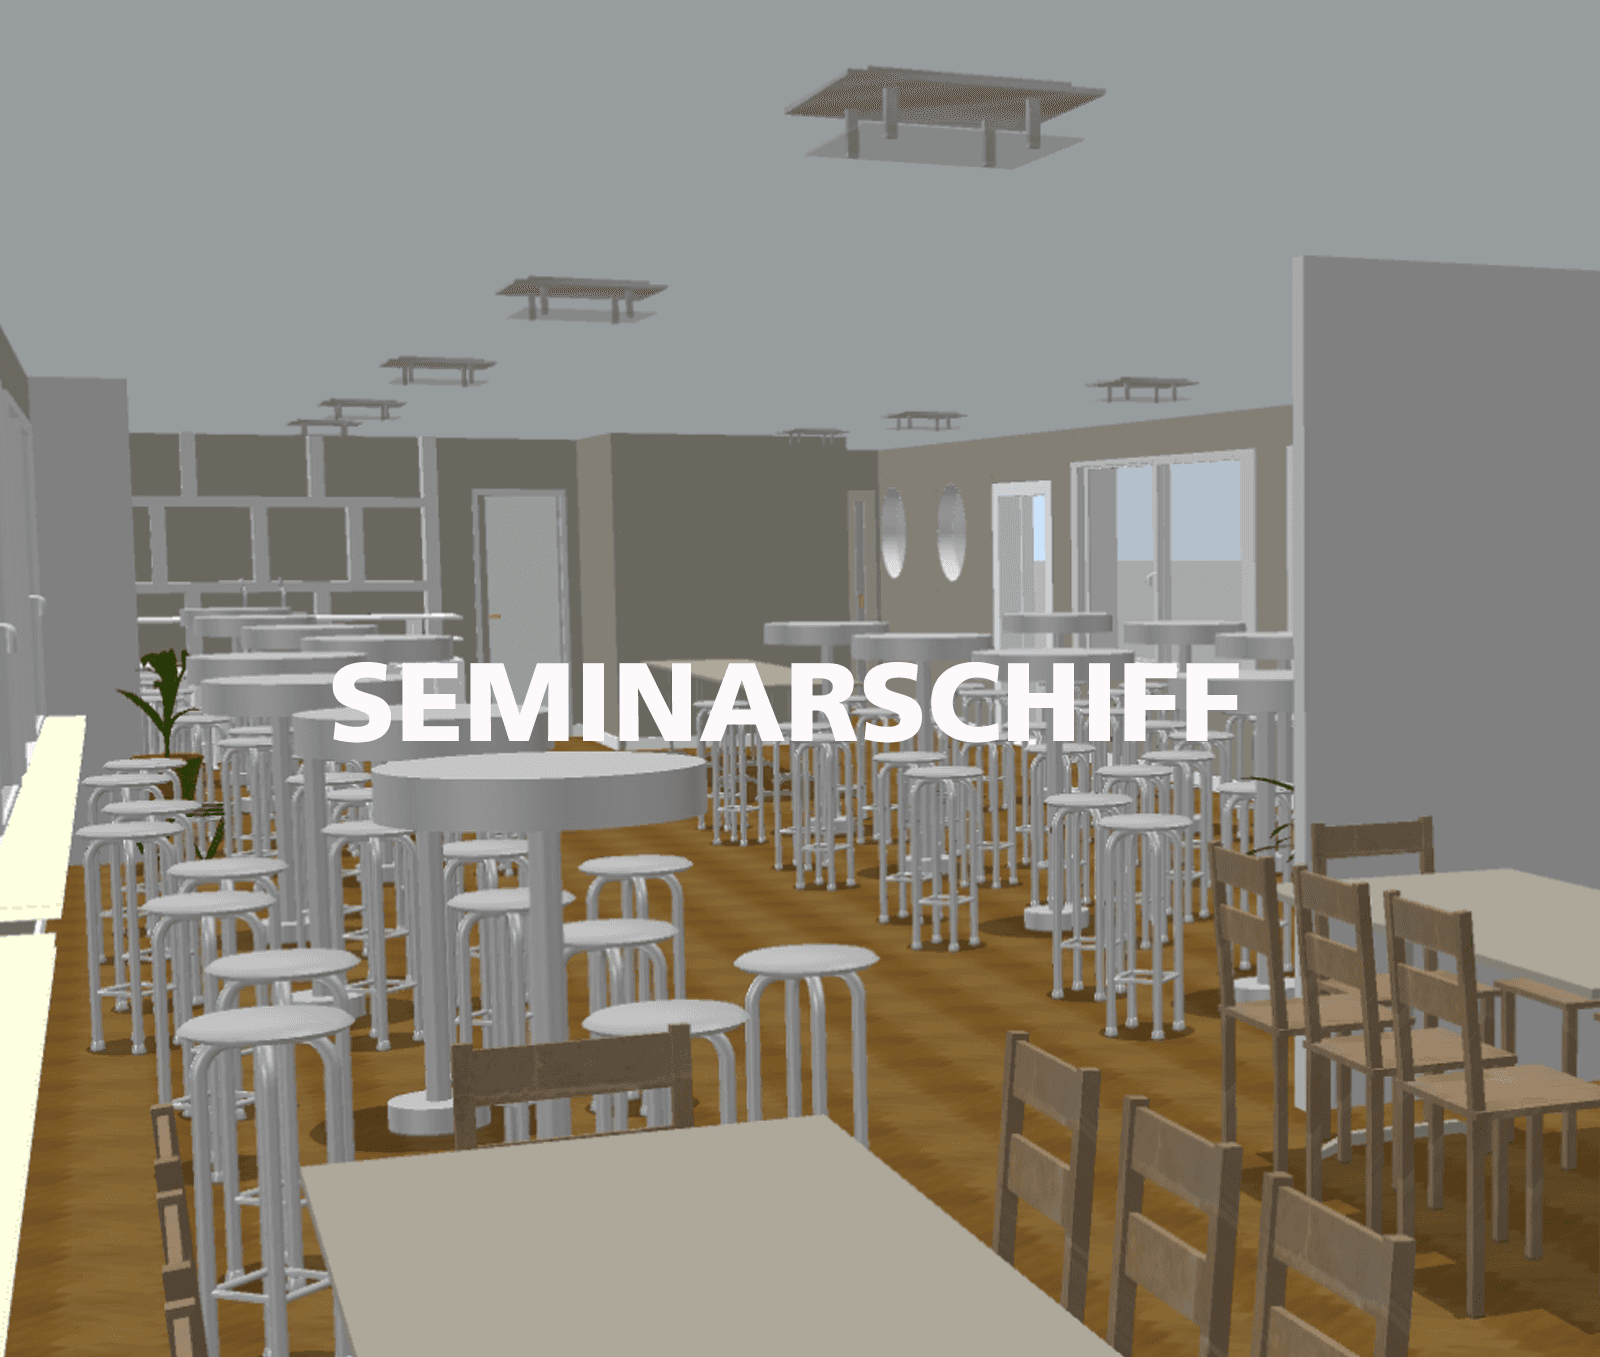 FLORIS Partner Location Seminarschiff